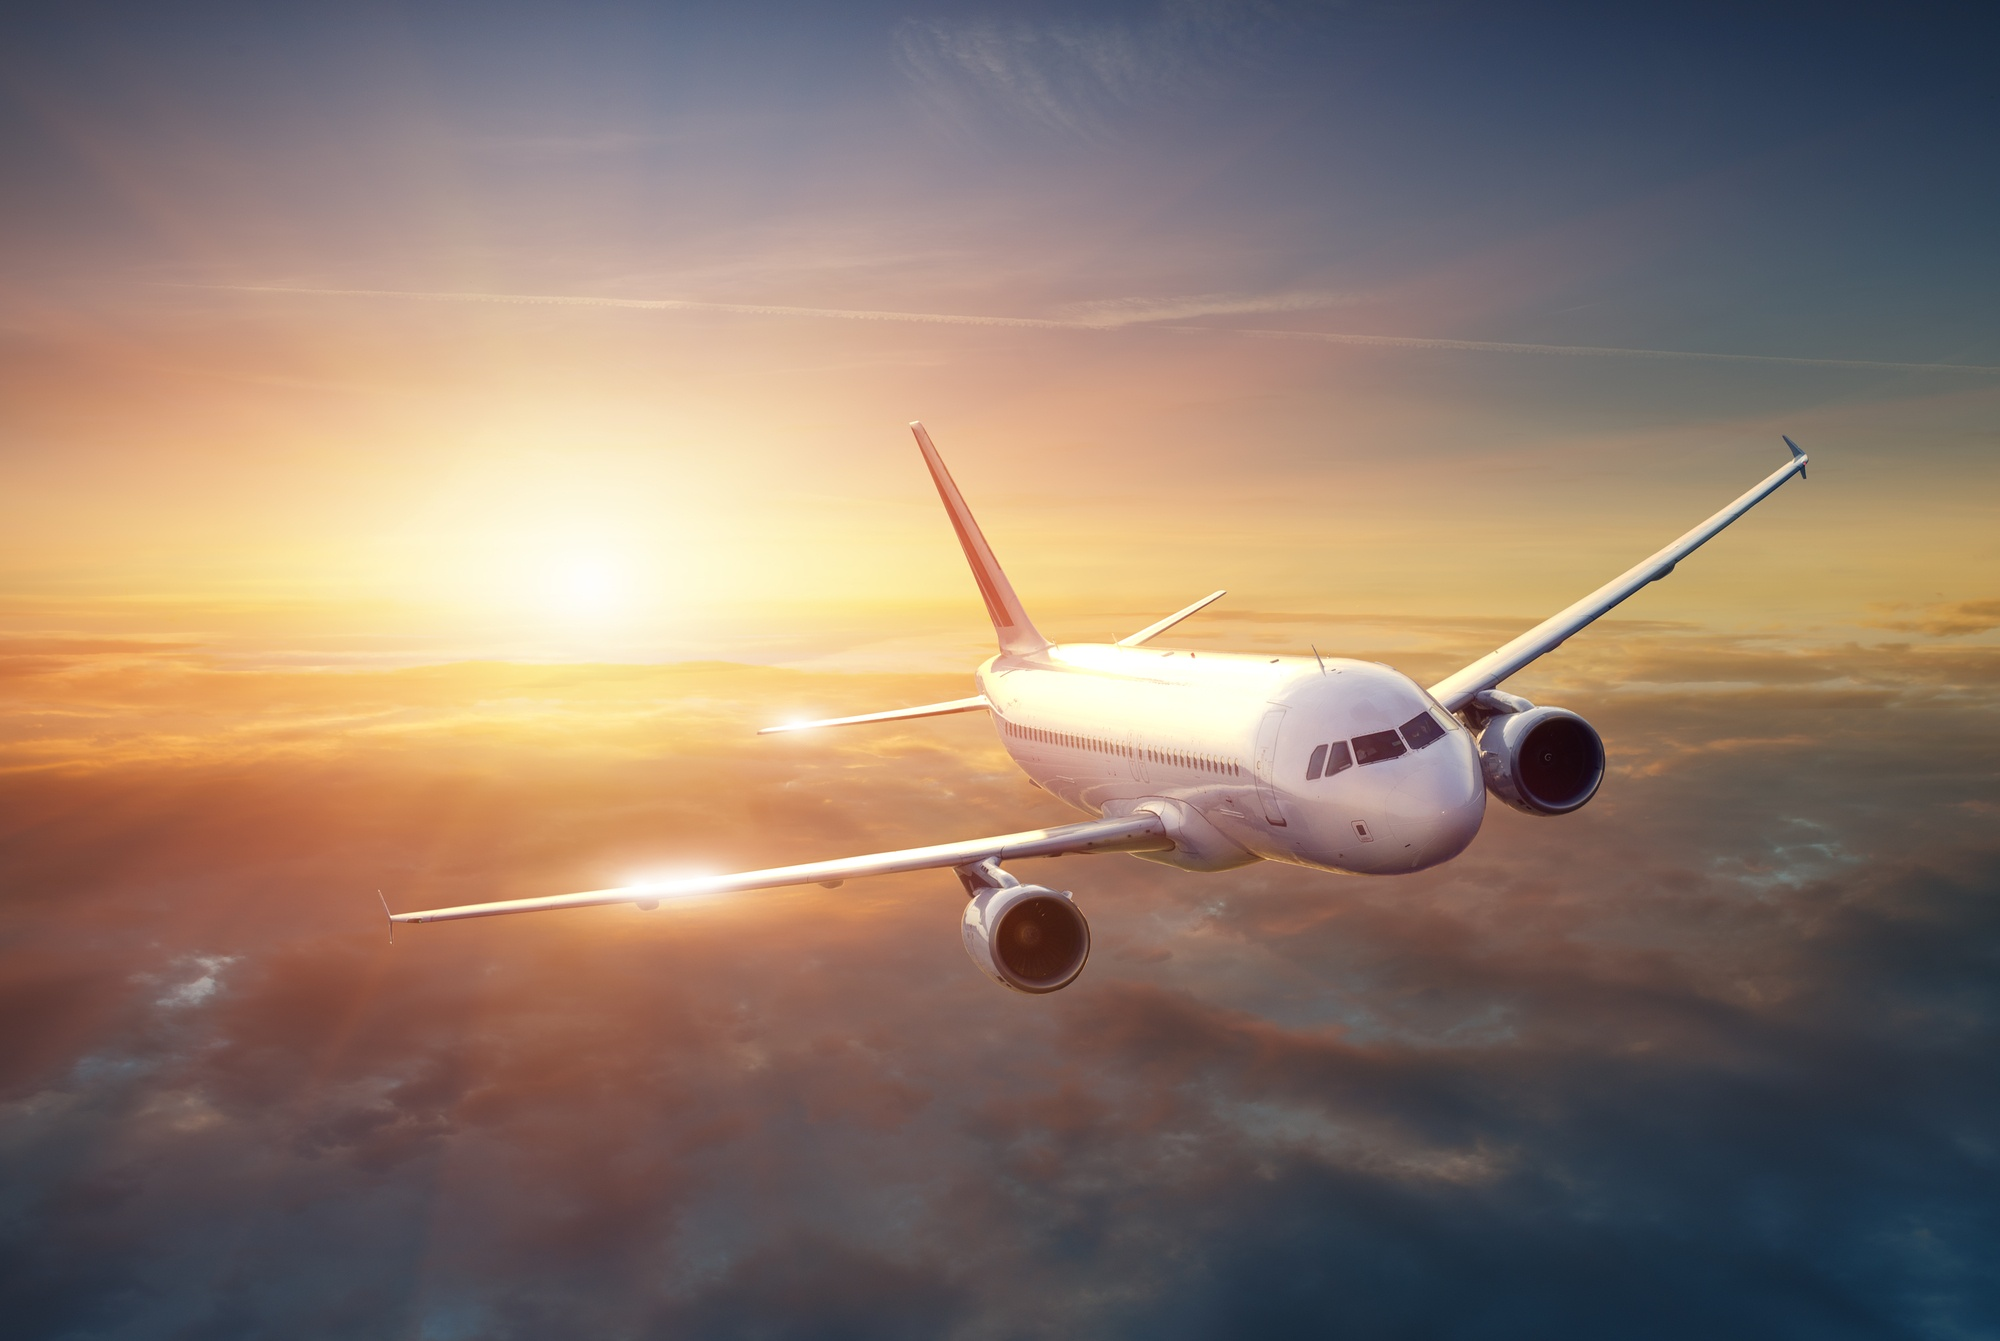 The Top Tips for Aviation Safety